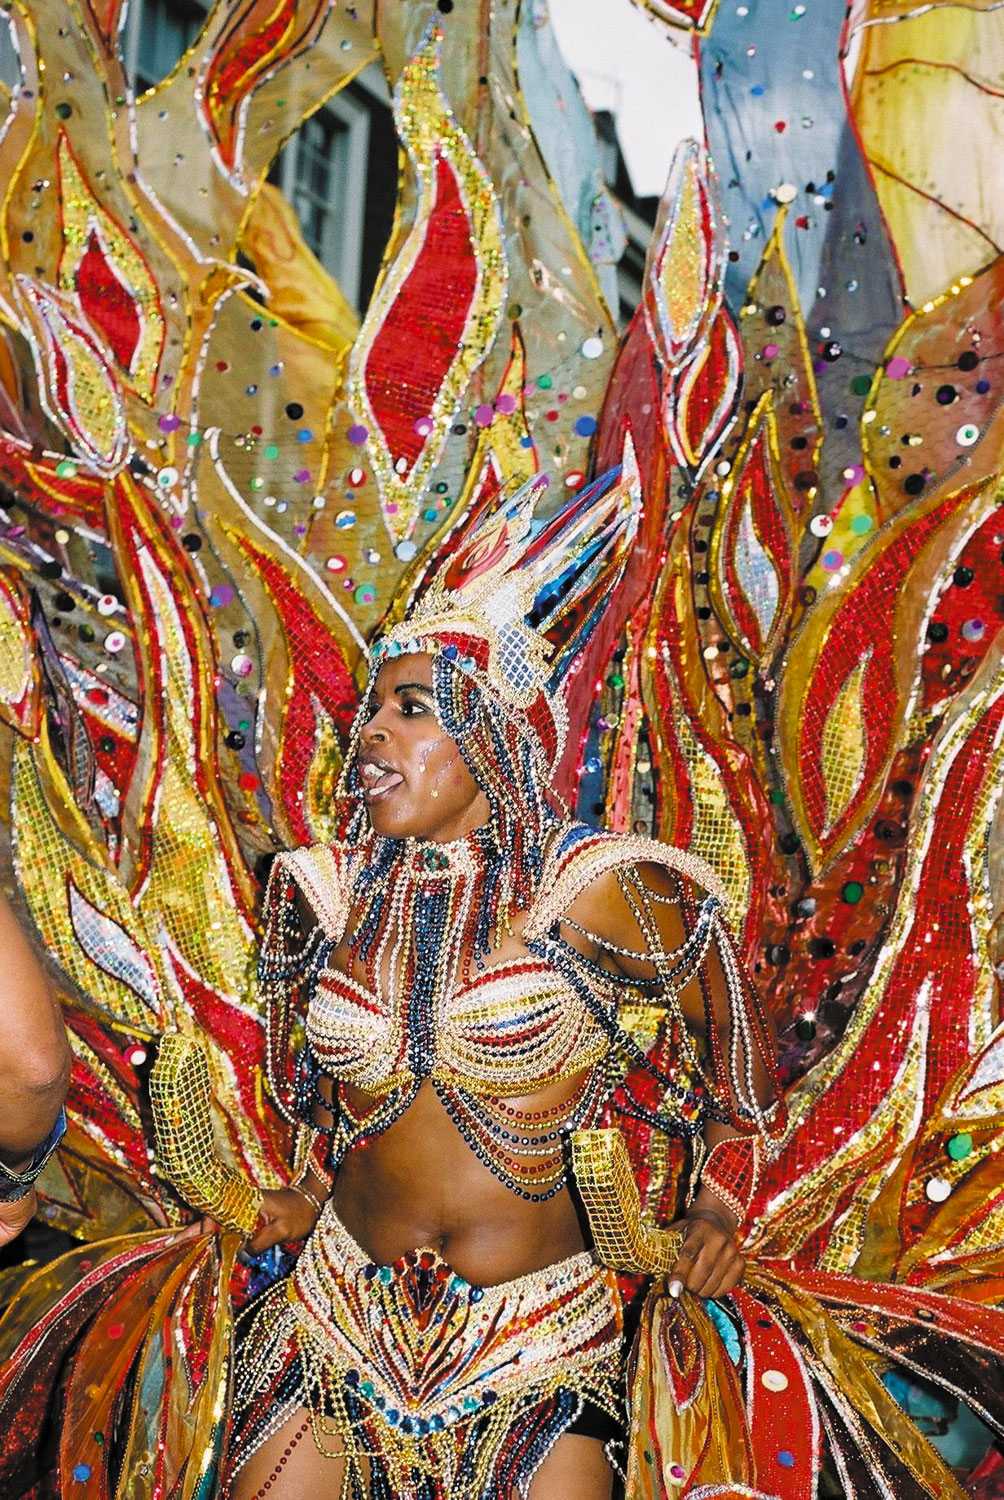 Carnival Monday. Photograph by Stephen Sparks